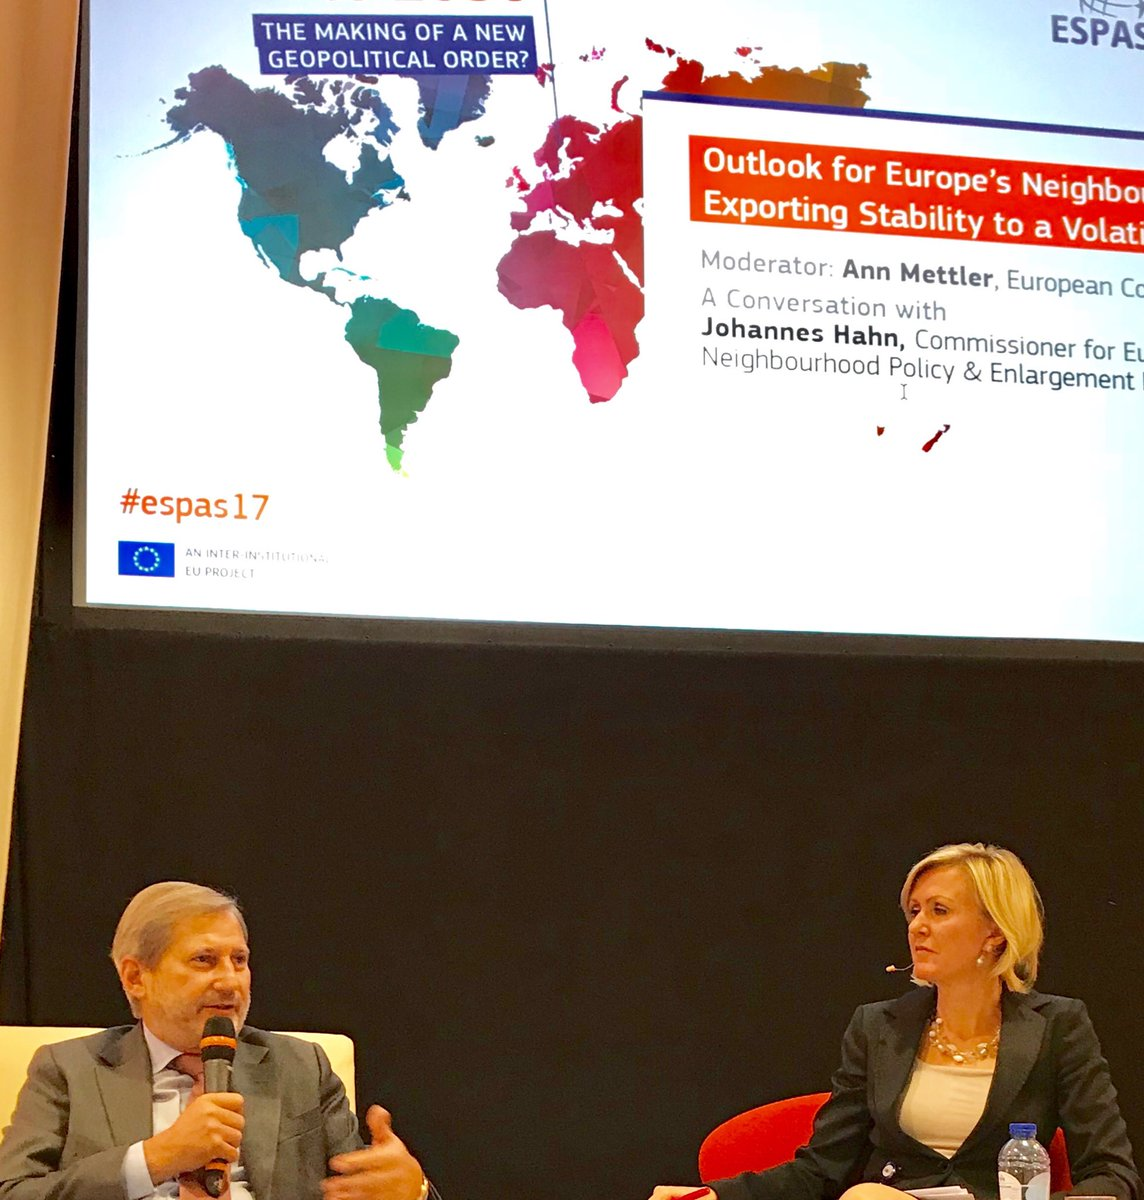 .@JHahnEU in conversation w @AnnMettler @ECThinkTank: #EU can only tackle new geopolitical challenges if we are more united, self-confident, robust and interest-based. Export stability to avoid importing instability, esp. in immediate neighbourhood. #espas17 @eu_near @eu_eeas<br>http://pic.twitter.com/DY50PR0veE